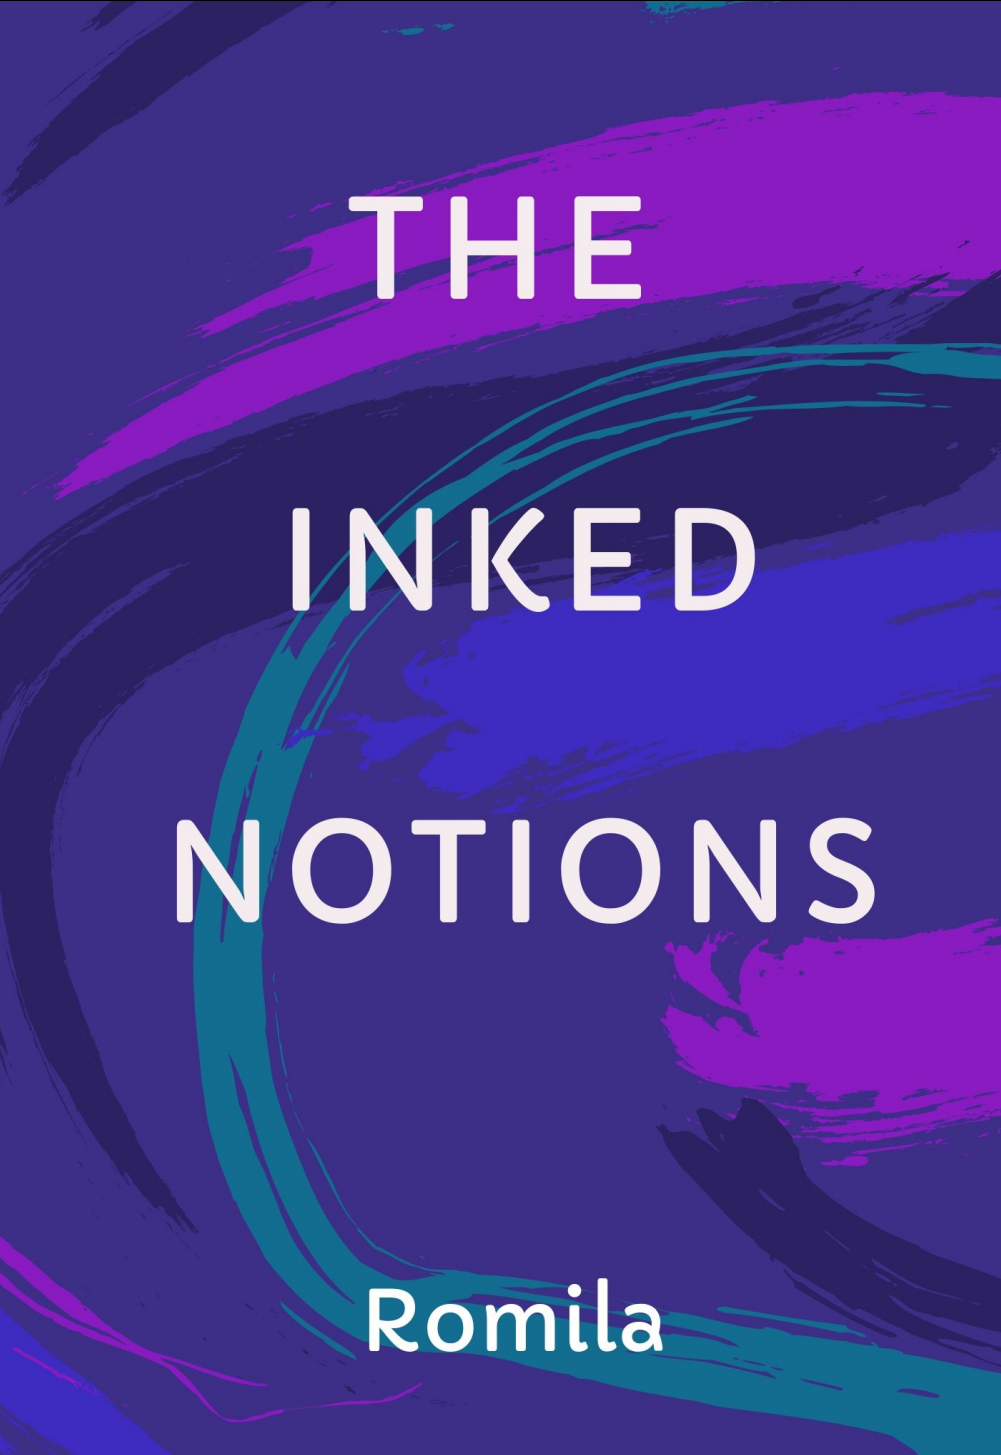 The Inked Notions By Romila (Book Review)